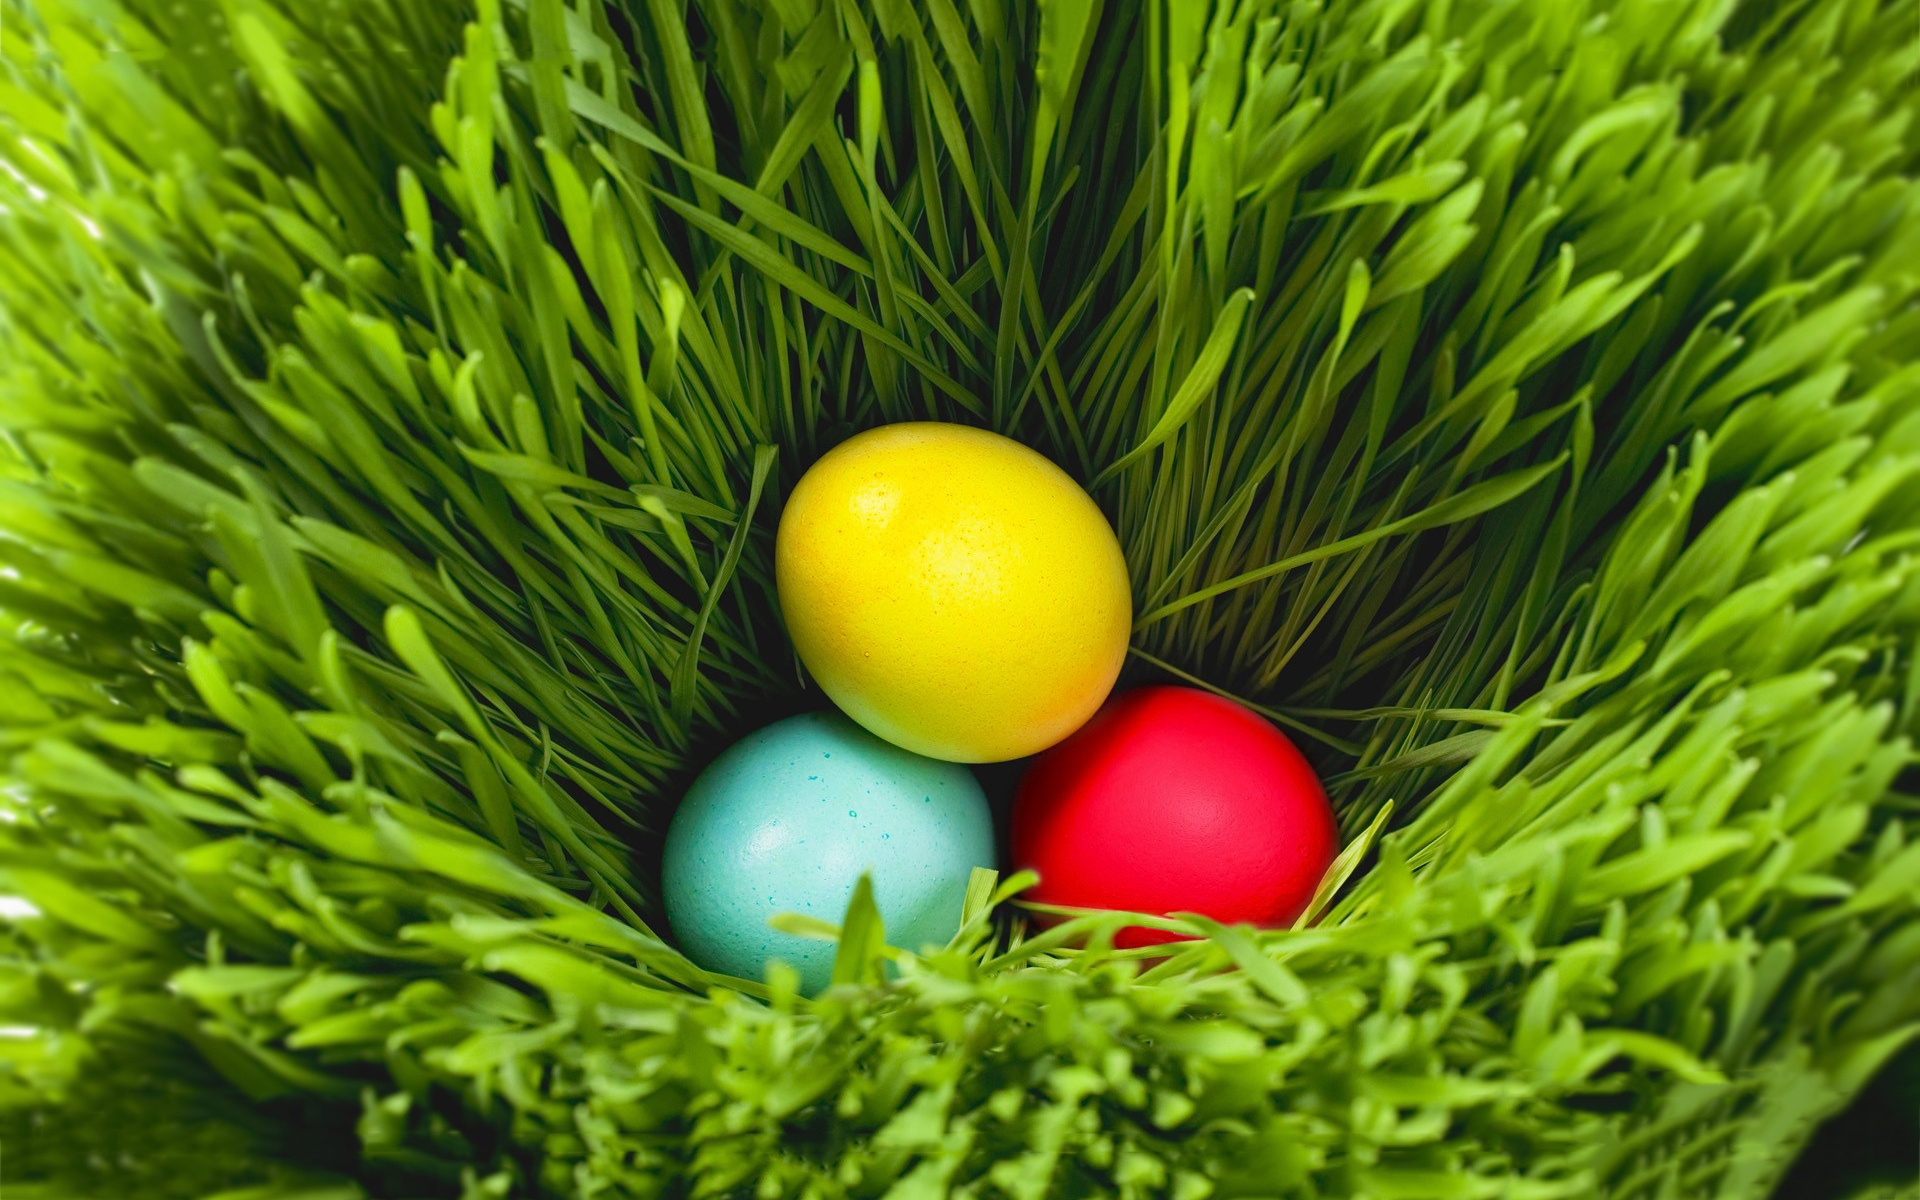 Easter 2014 Backgrounds   Wallpaper High Definition High Quality 1920x1200